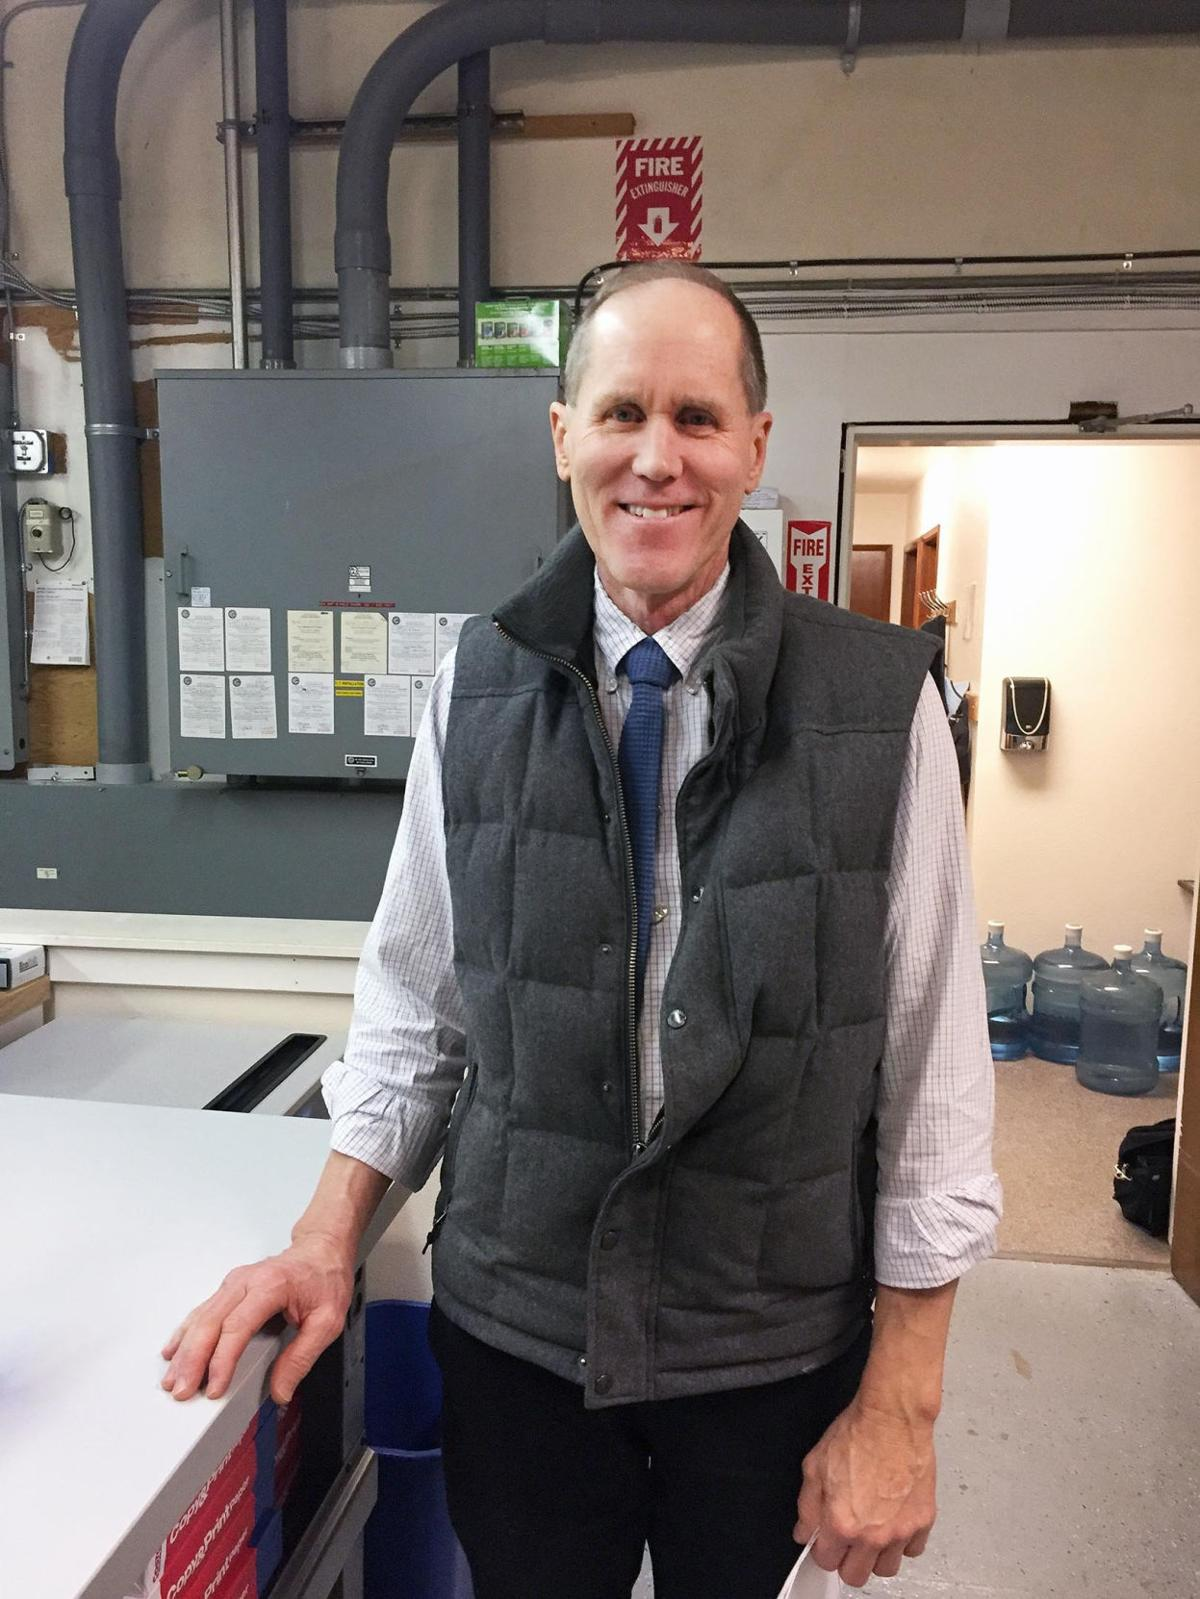 Cannon Beach public works director to leave